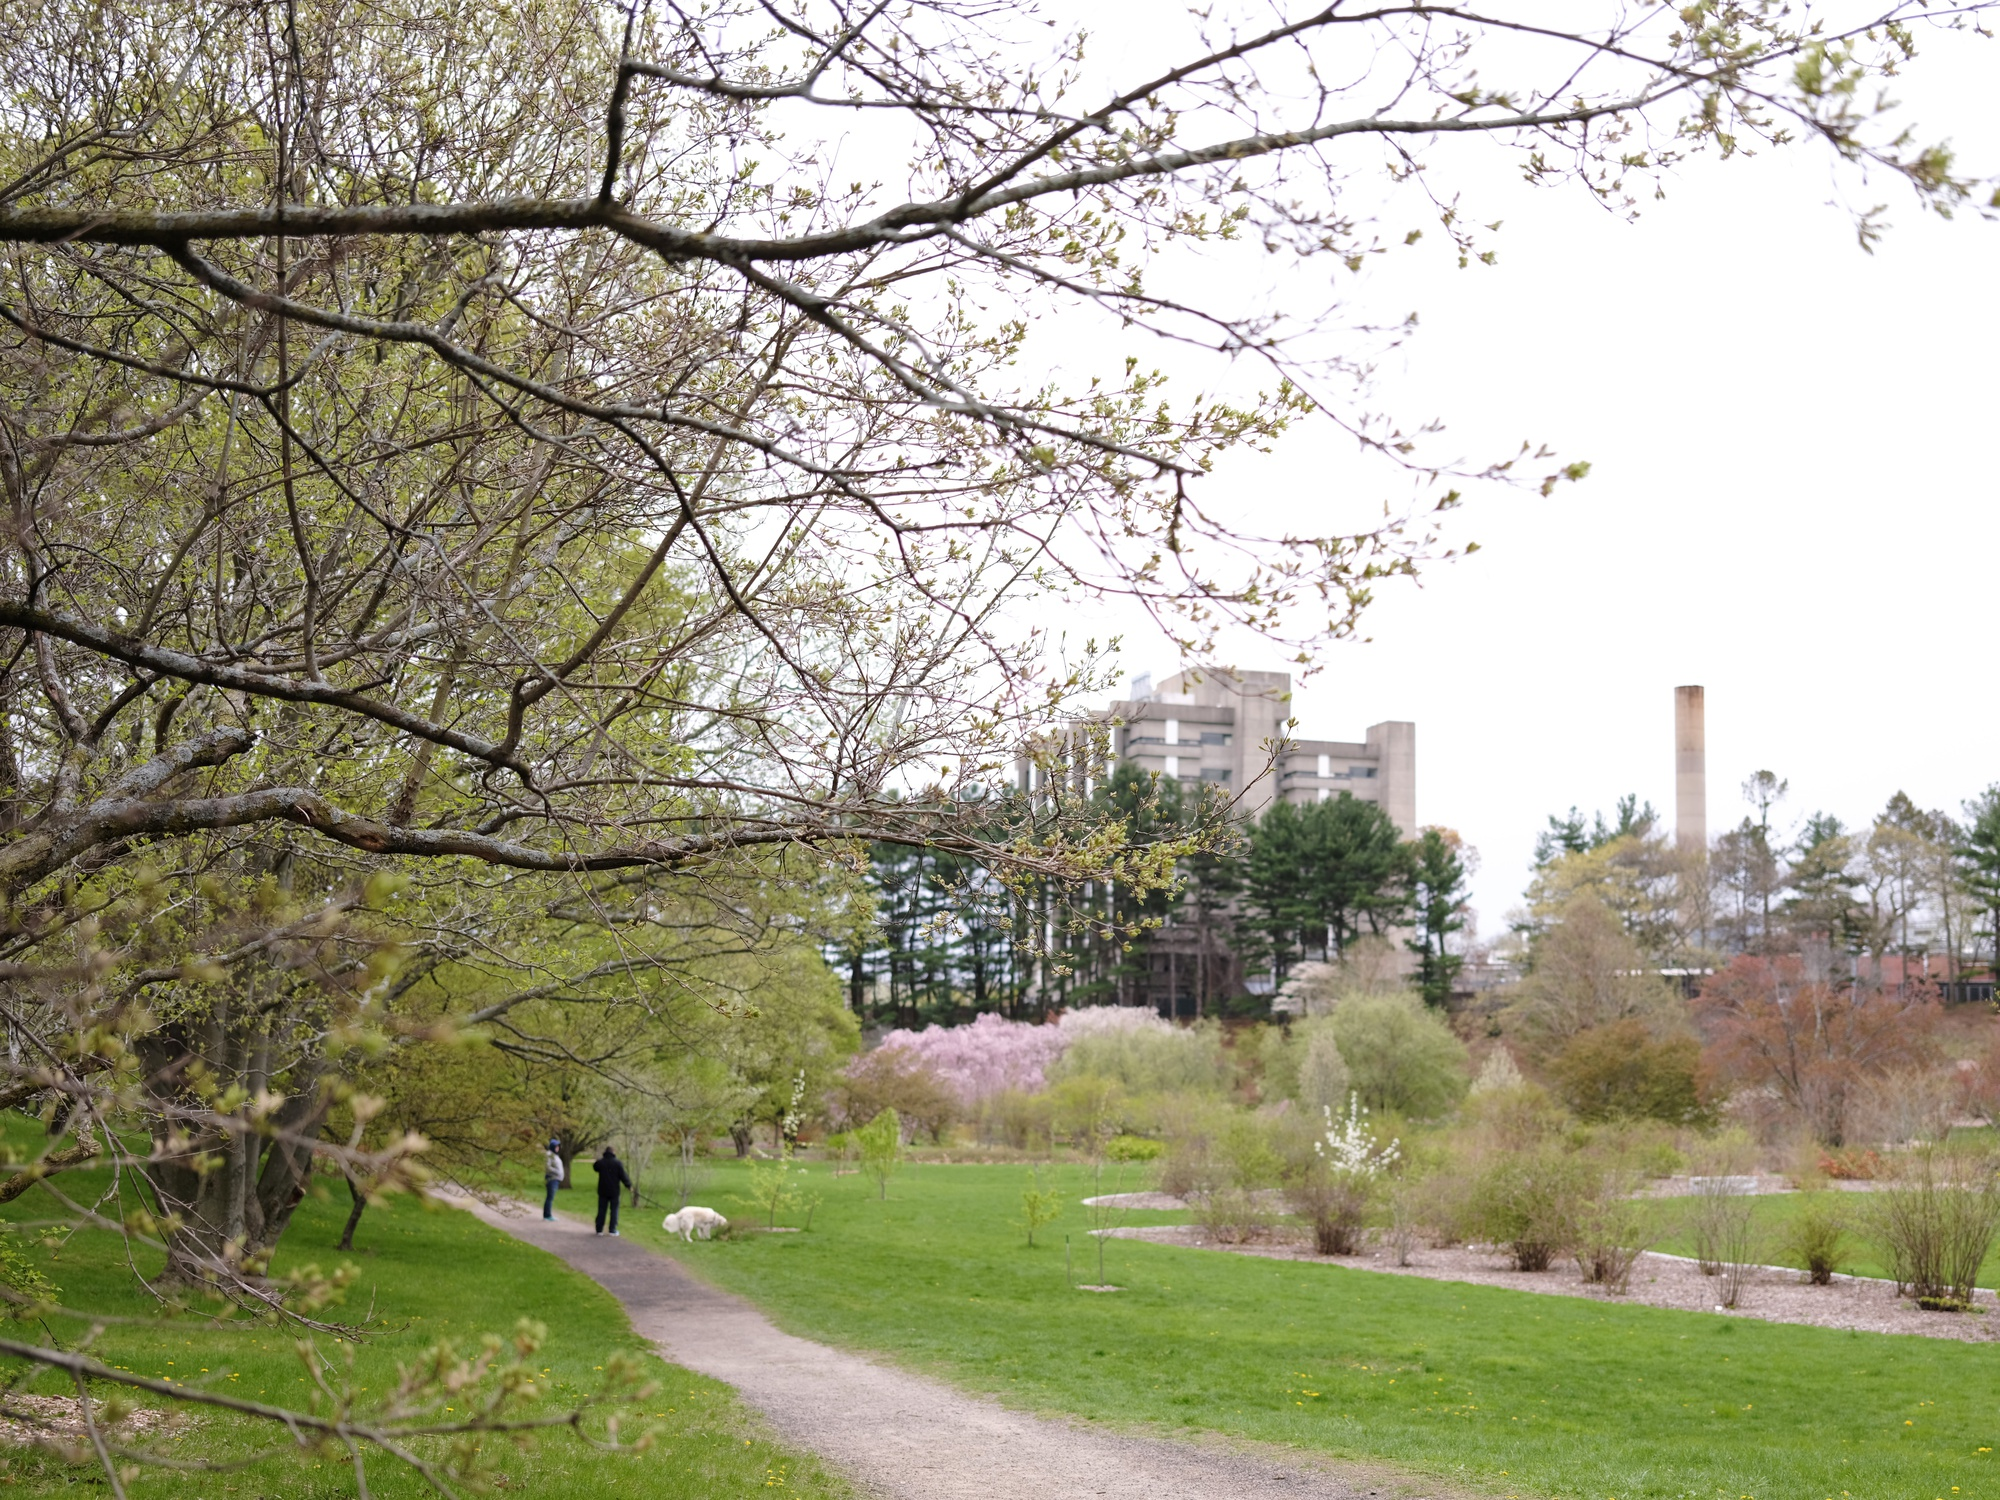 Harvard University's Arnold Arboretum is located in the Jamaica Plain and Roslindale sections of Boston.